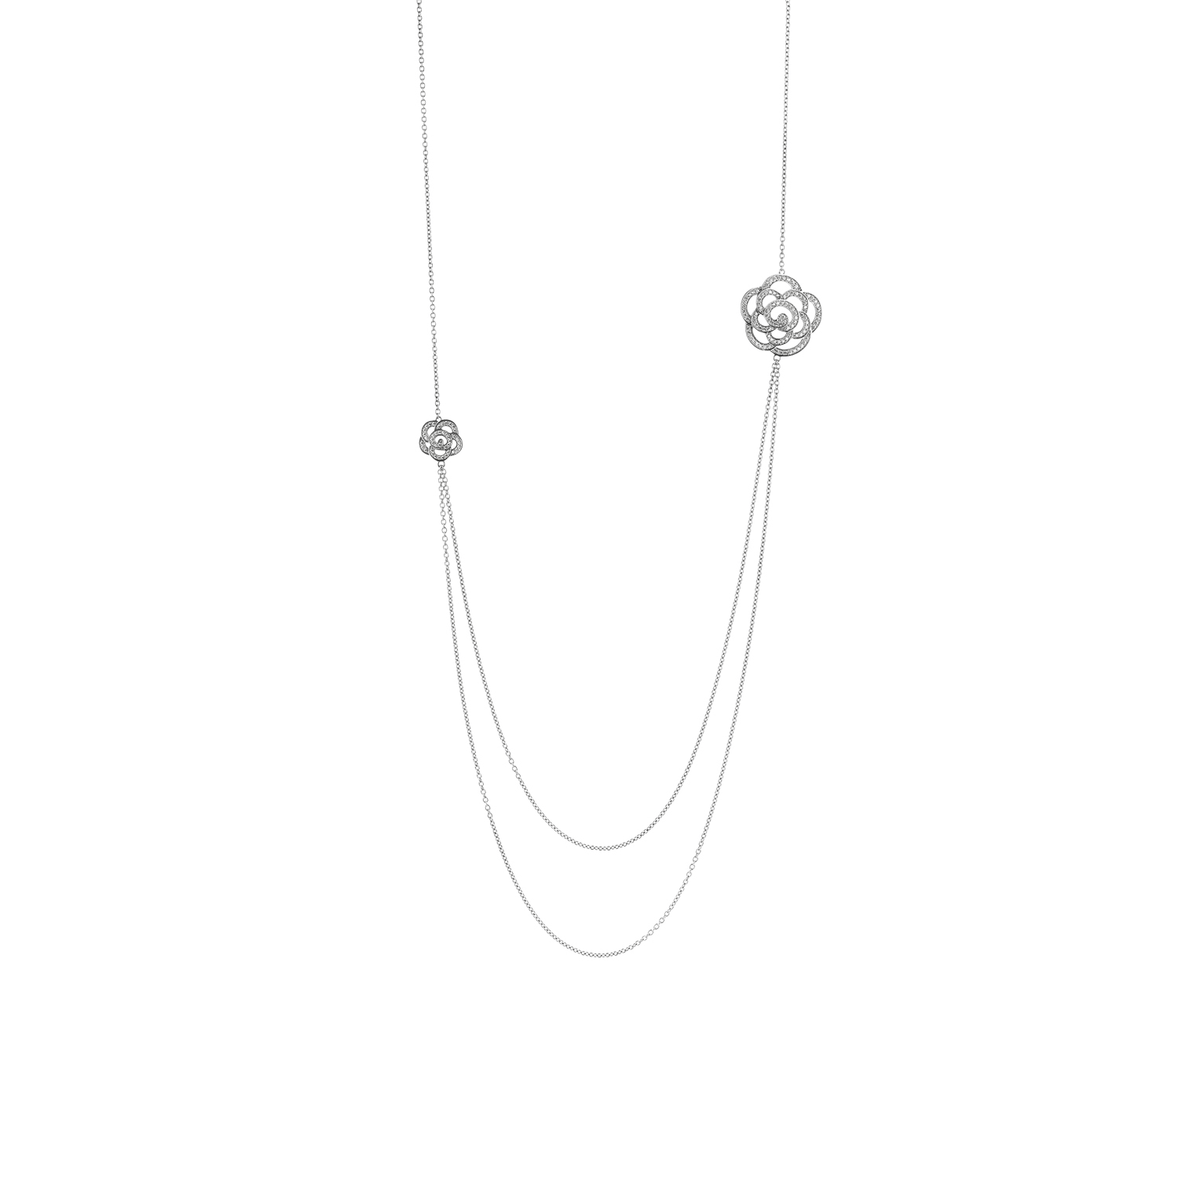 TI SENTO - Milano Necklace 3885ZI